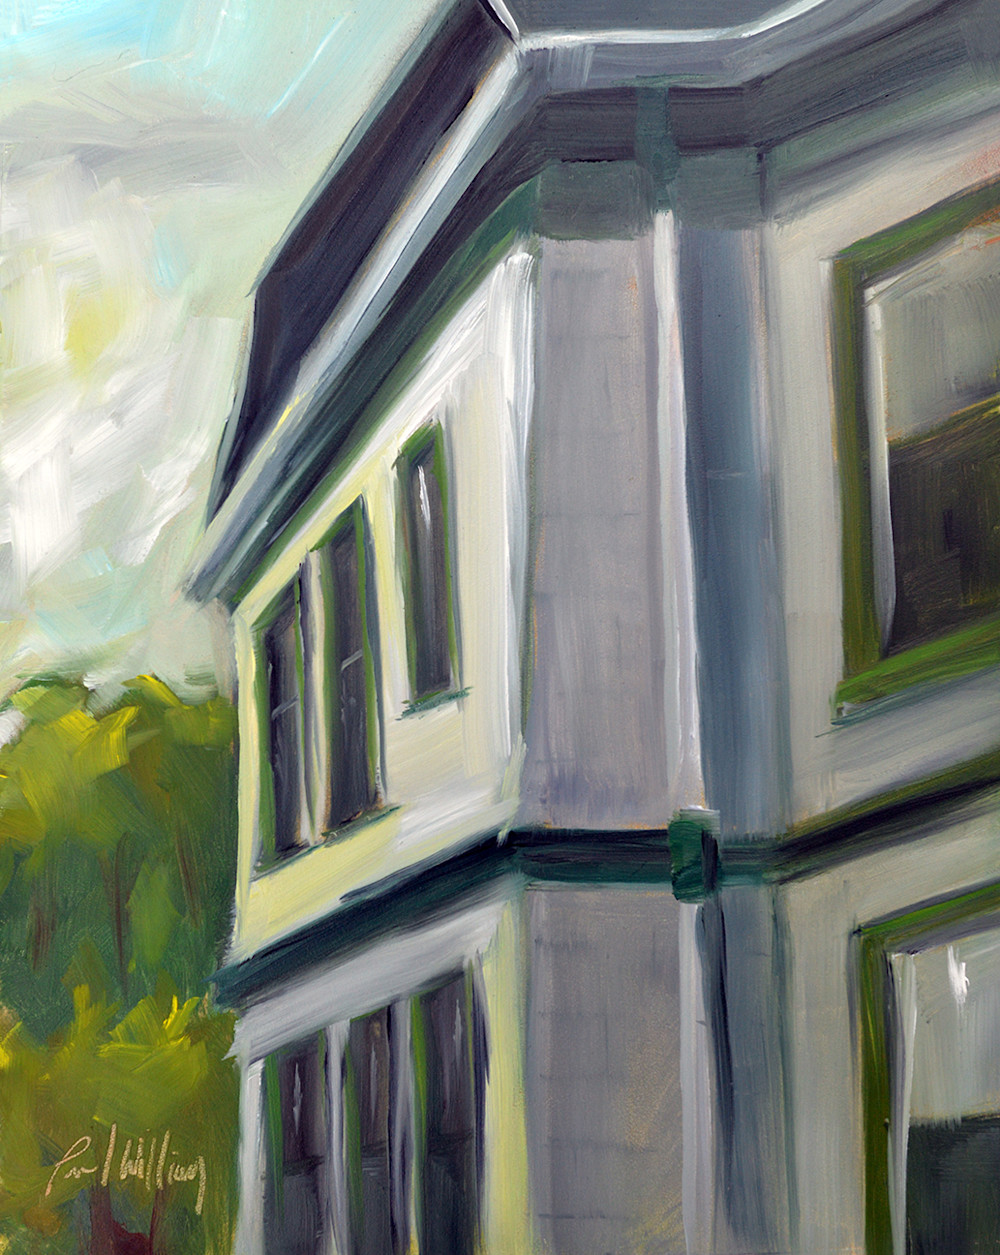 White house green trim plein air painting by paul william art for sale - White house green trim ...